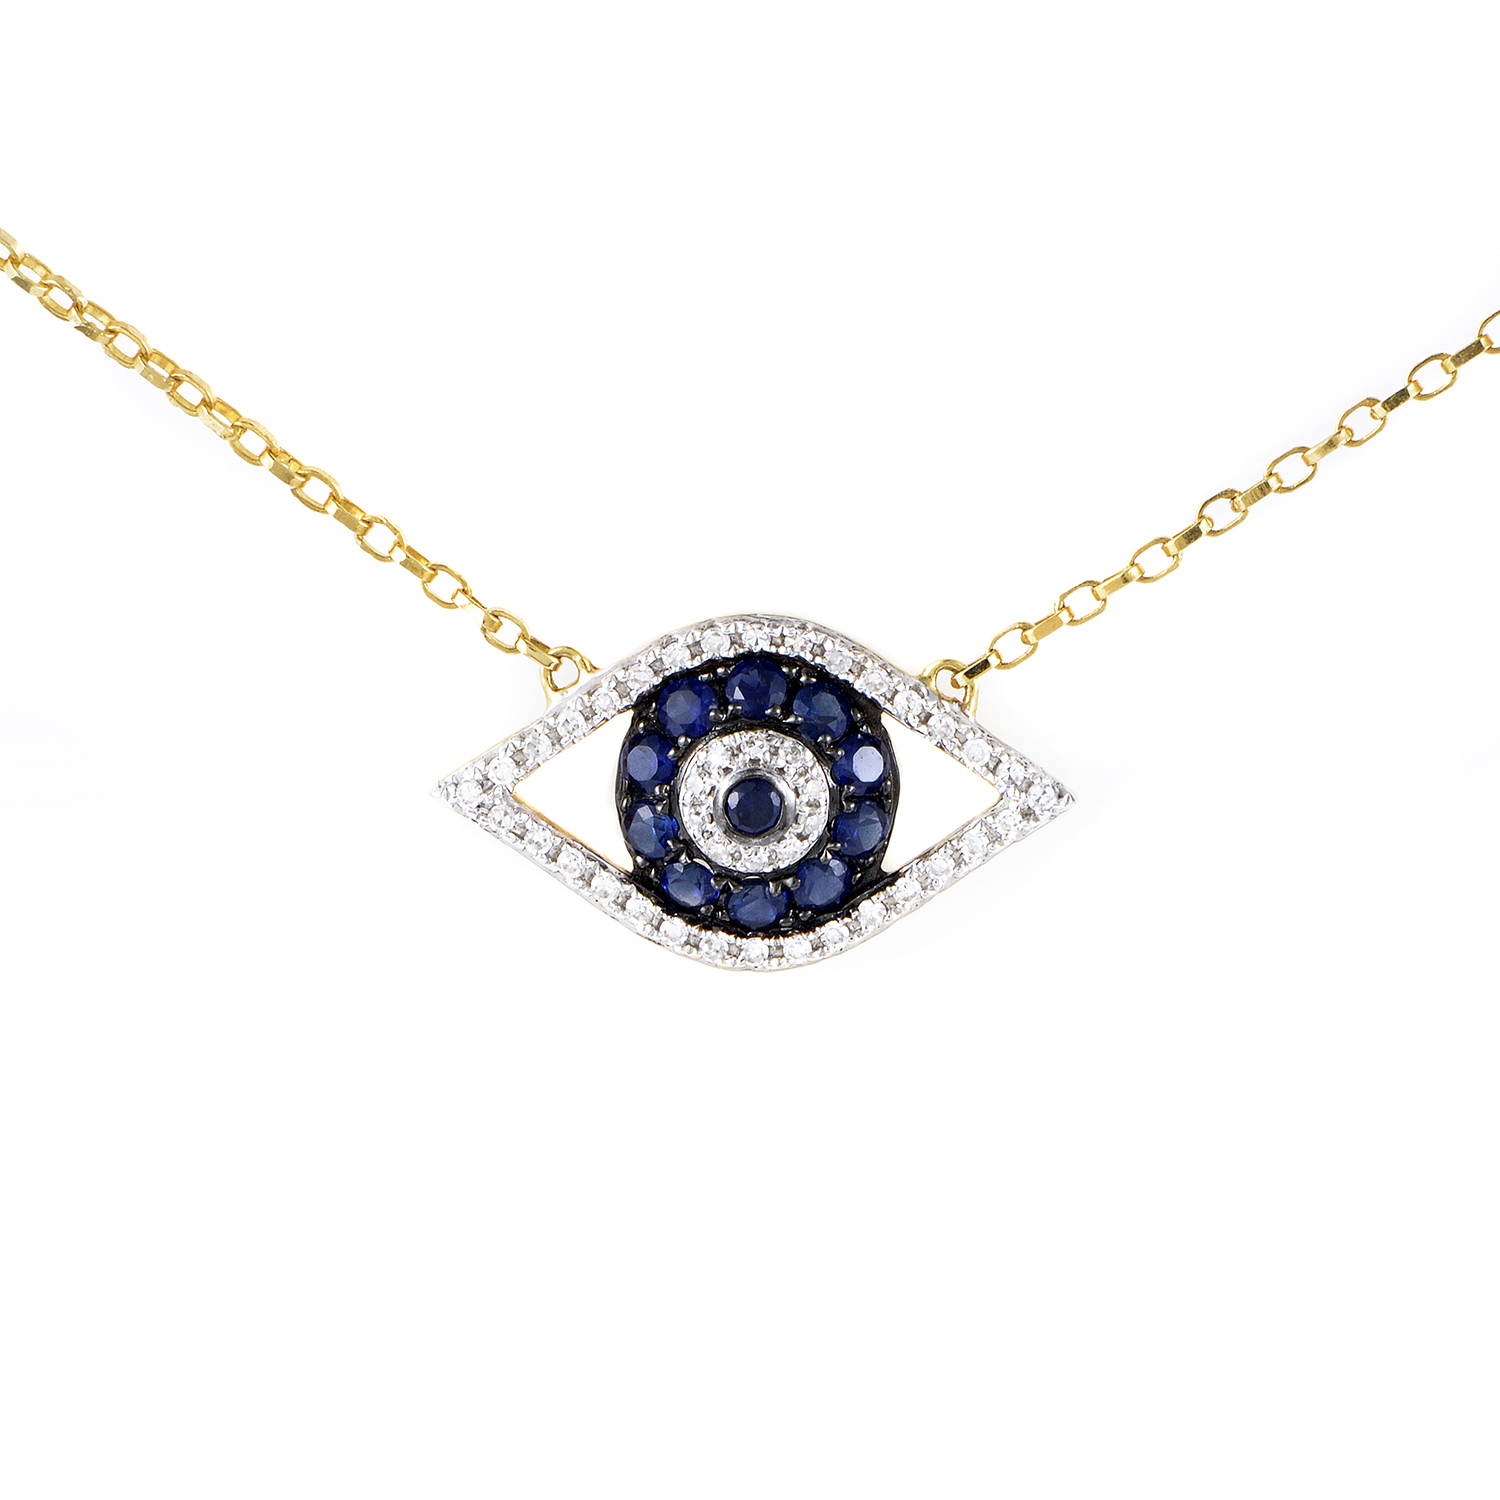 Women's 18K Yellow Gold Diamond & Sapphire Evil Eye Pendant Necklace